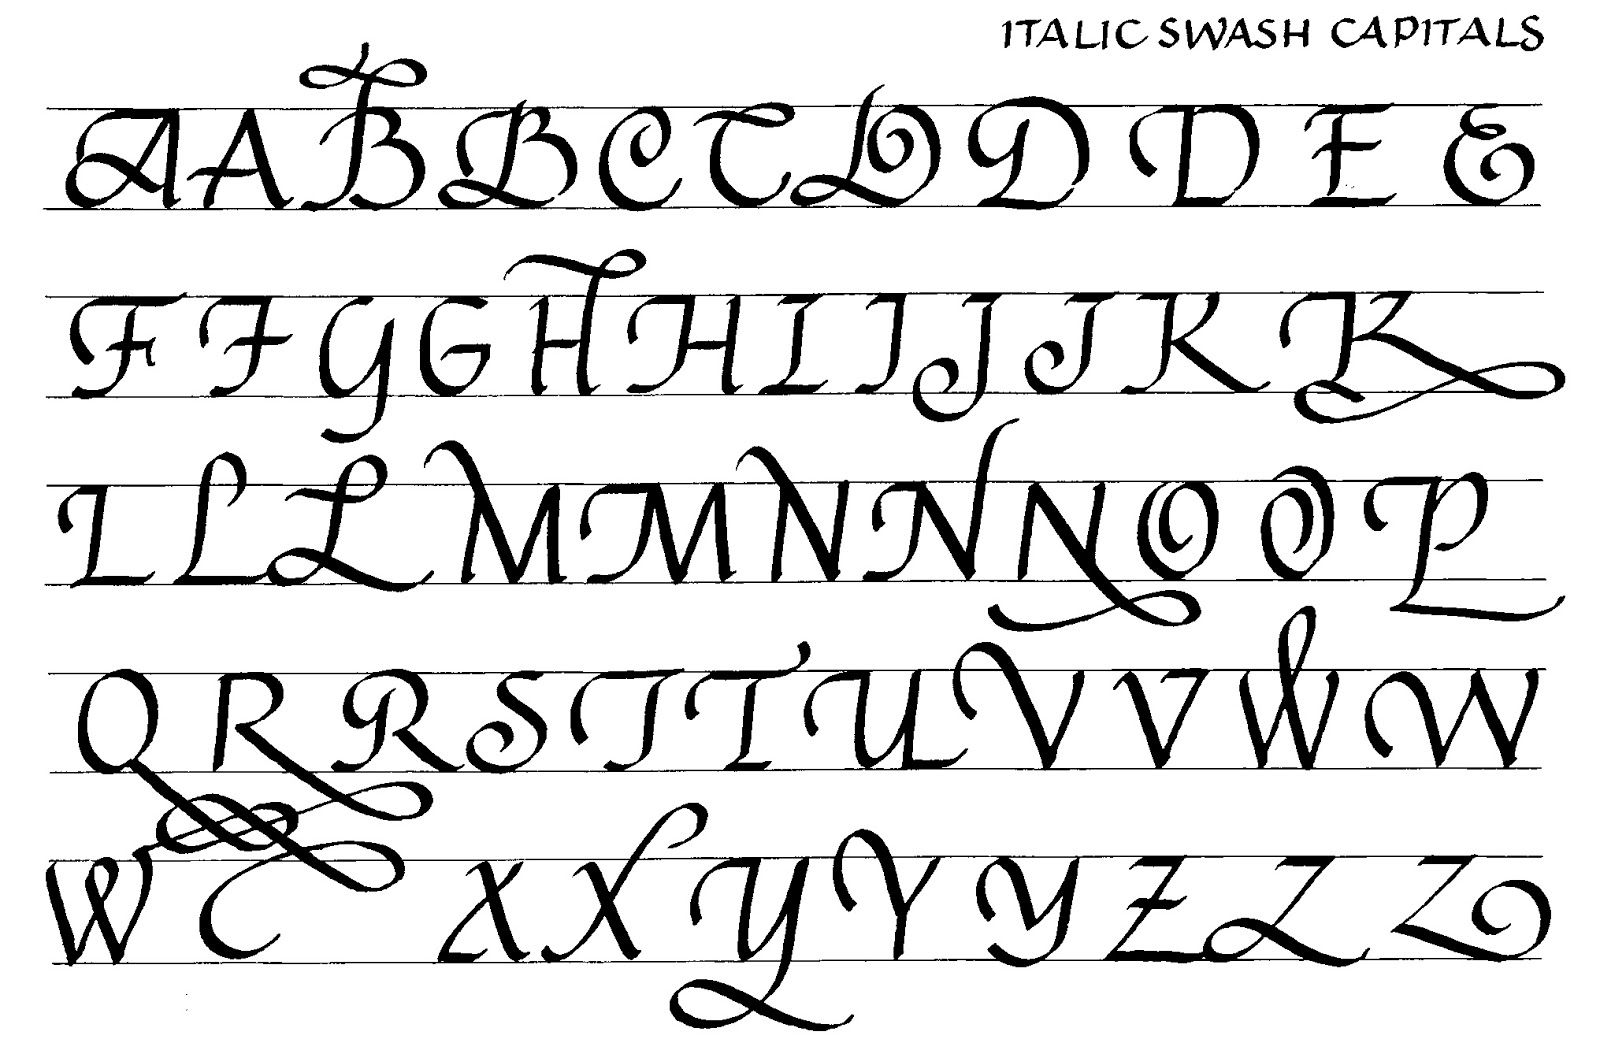 170 Swash Italic Capitals With Options